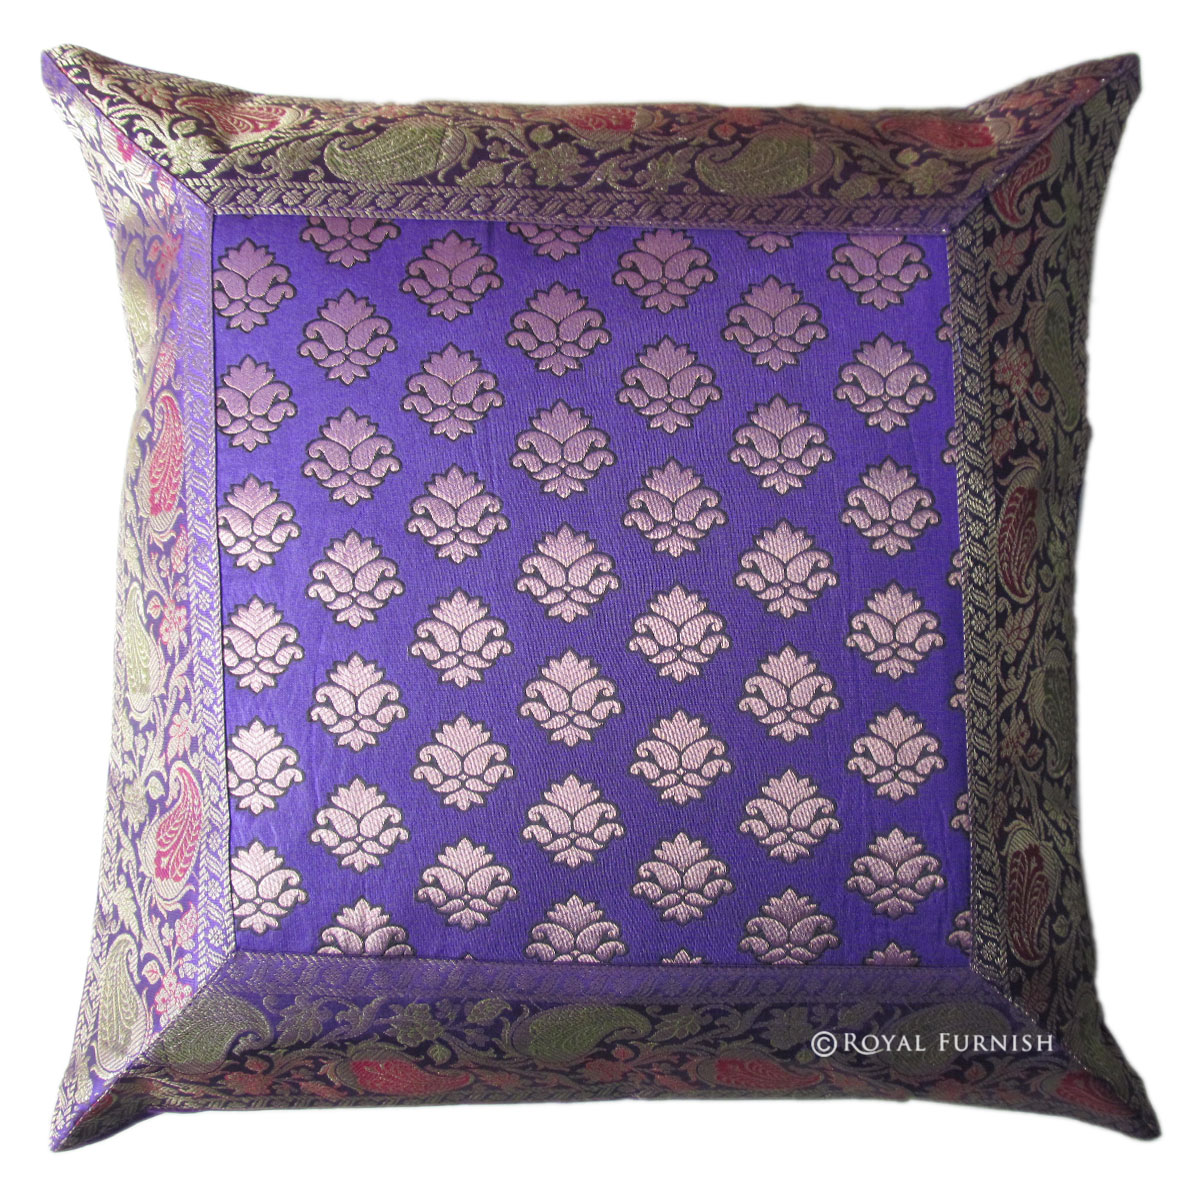 Blue Decorative India Silk Brocade Floral Throw Pillow Sham